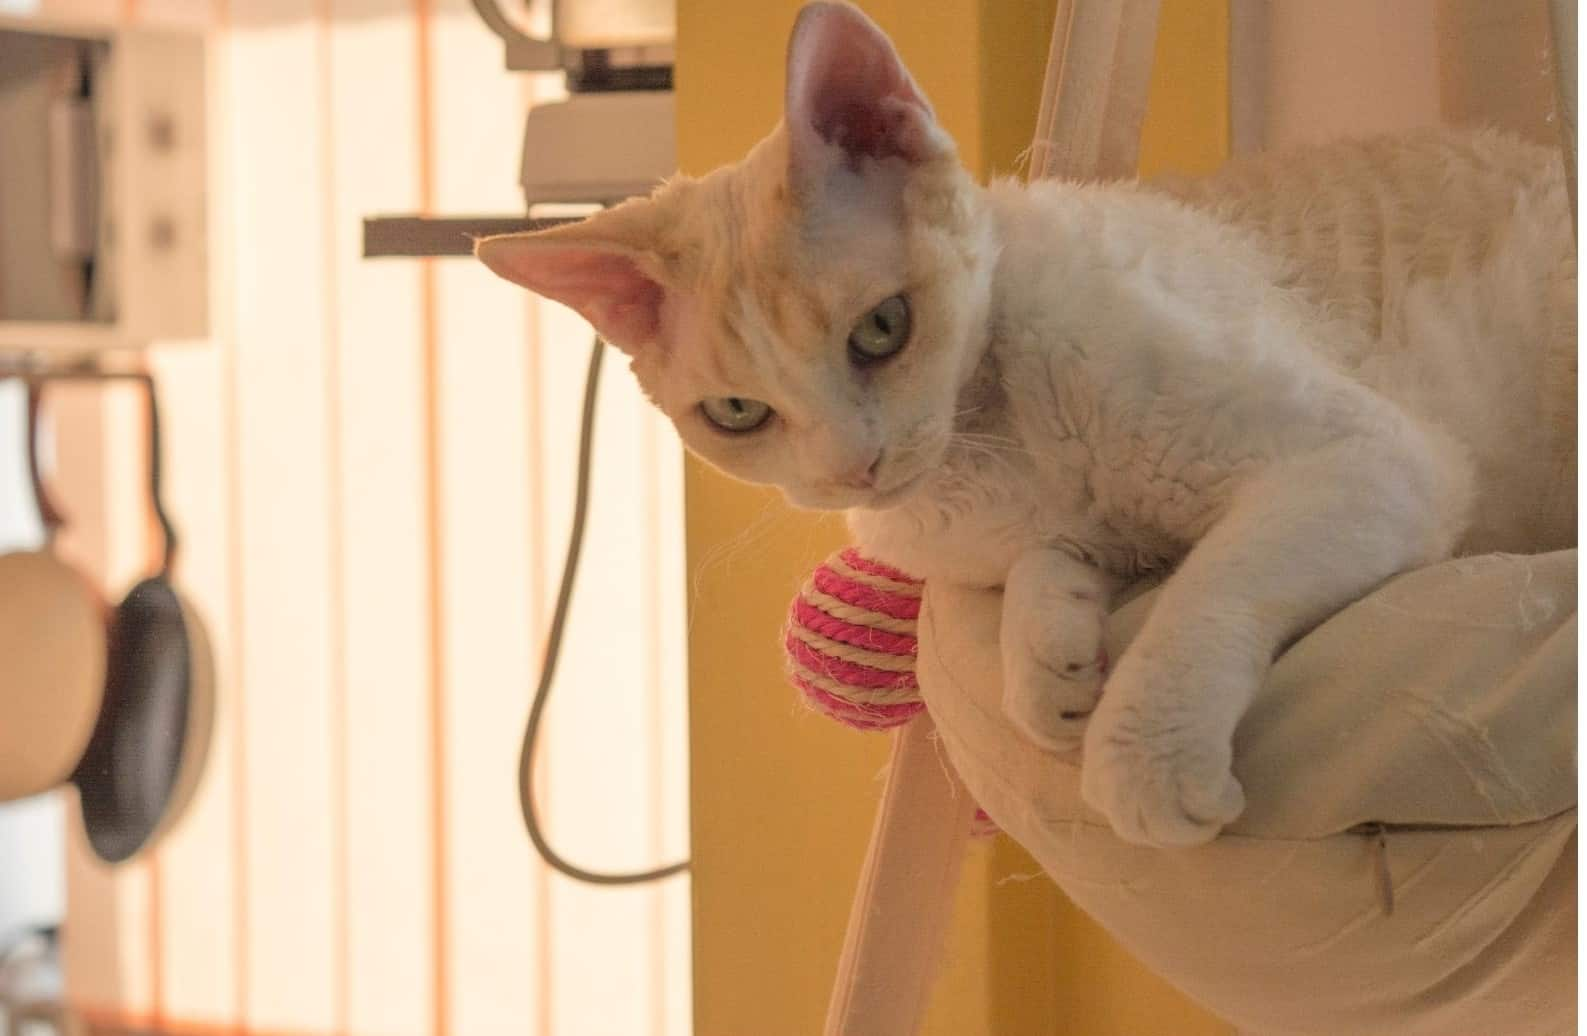 Devon Rex cat on a chair: They shed like all cats